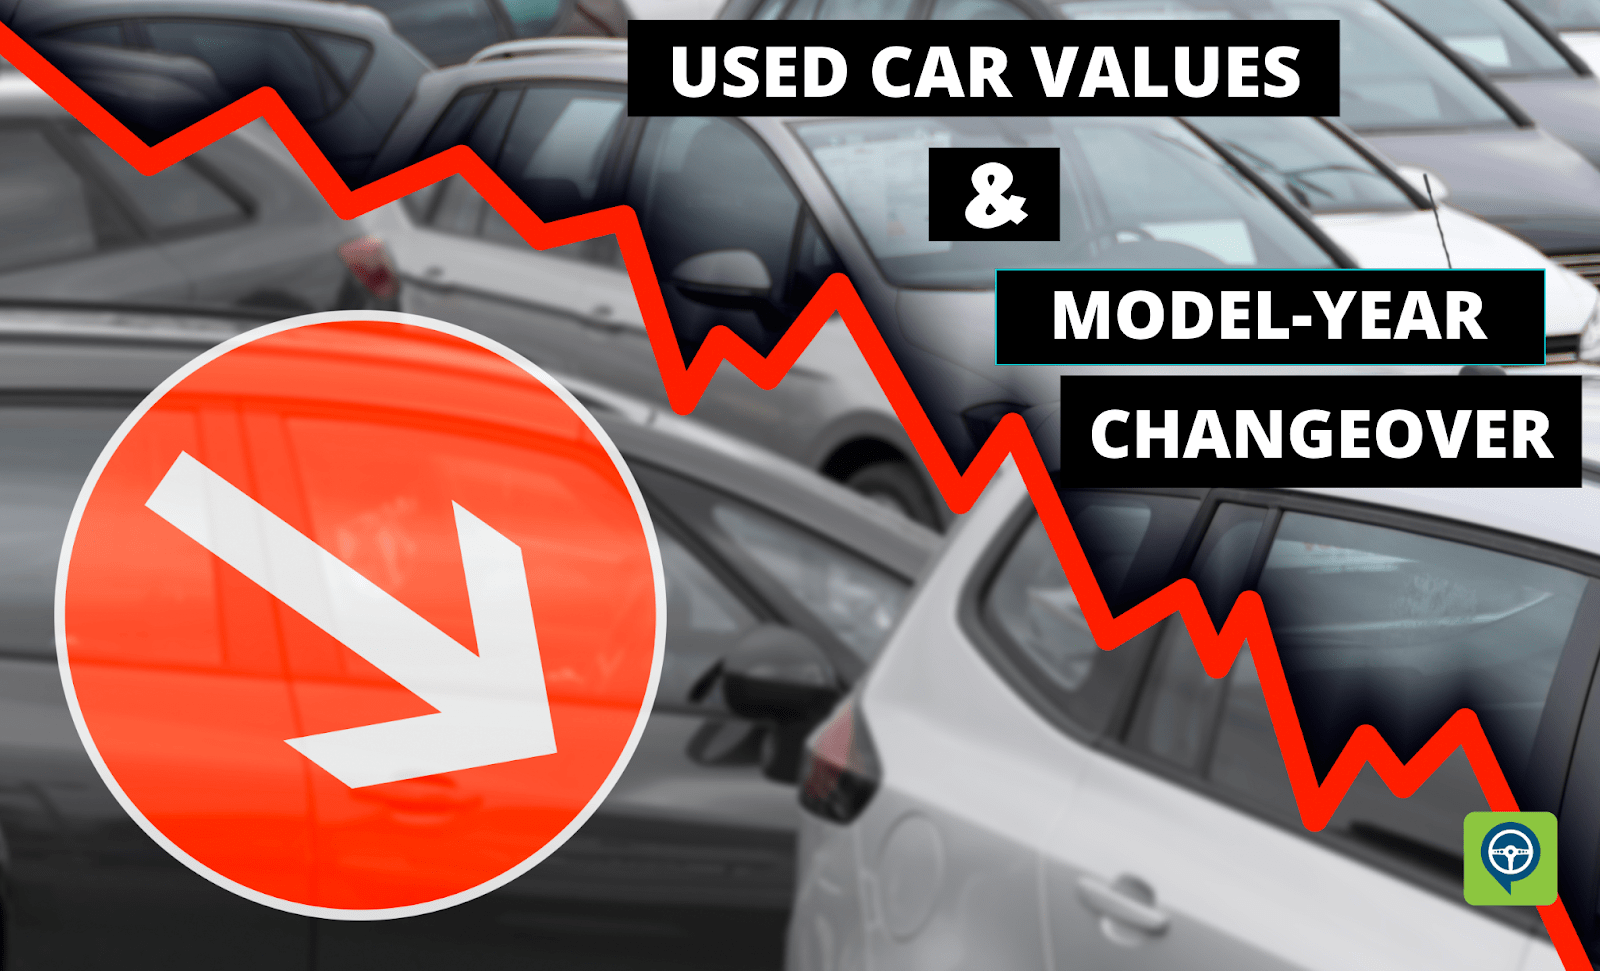 Used Car Values & Model-Year Changeover